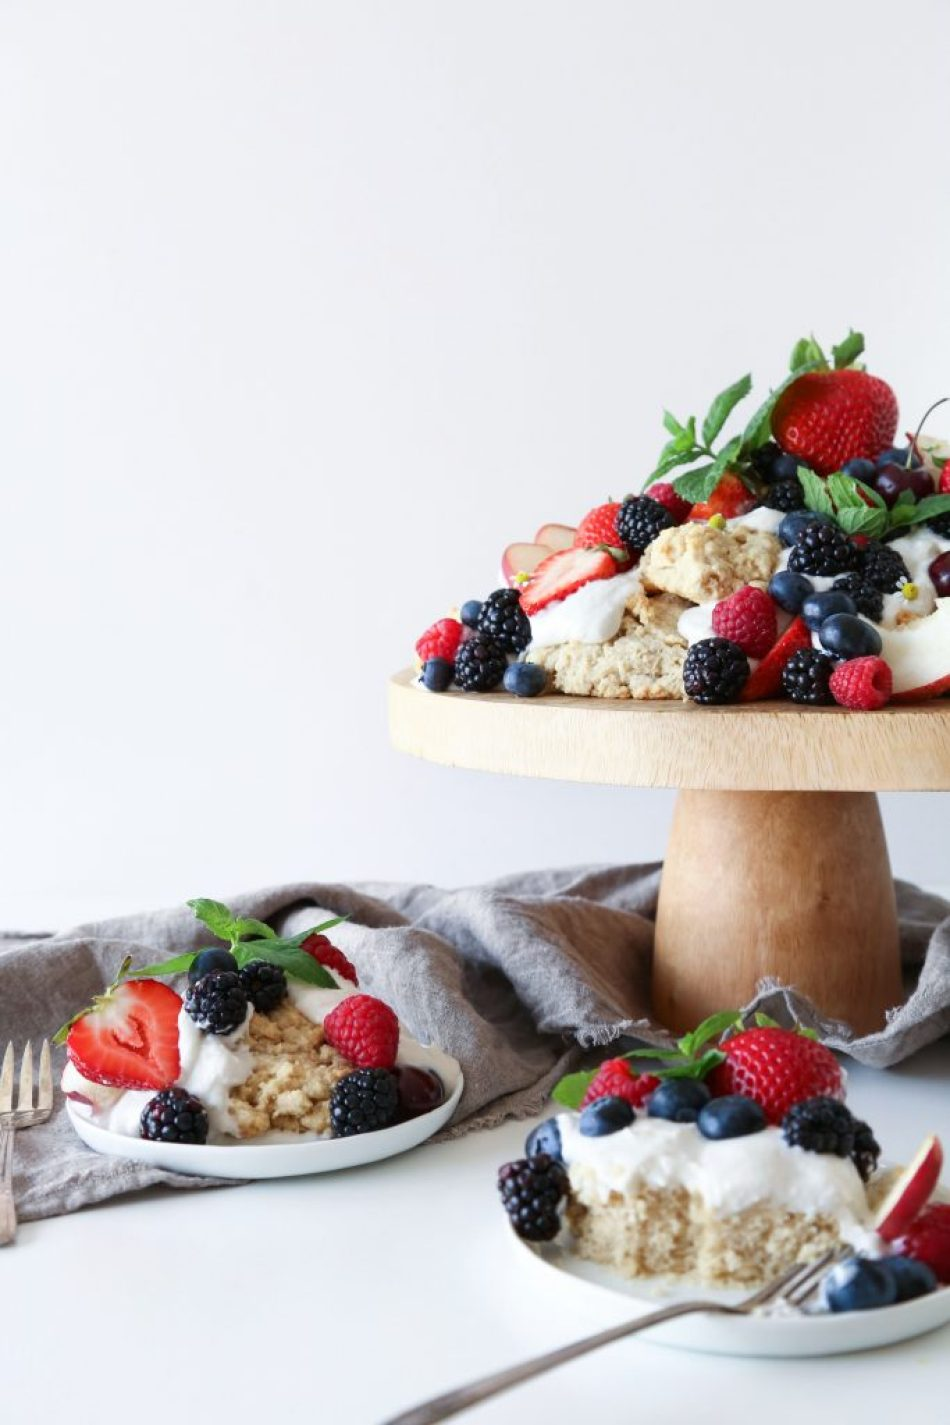 Oat Shortcakes with Summer Fruit   Vegan friendly. Free of gluten, dairy, and refined sugar.